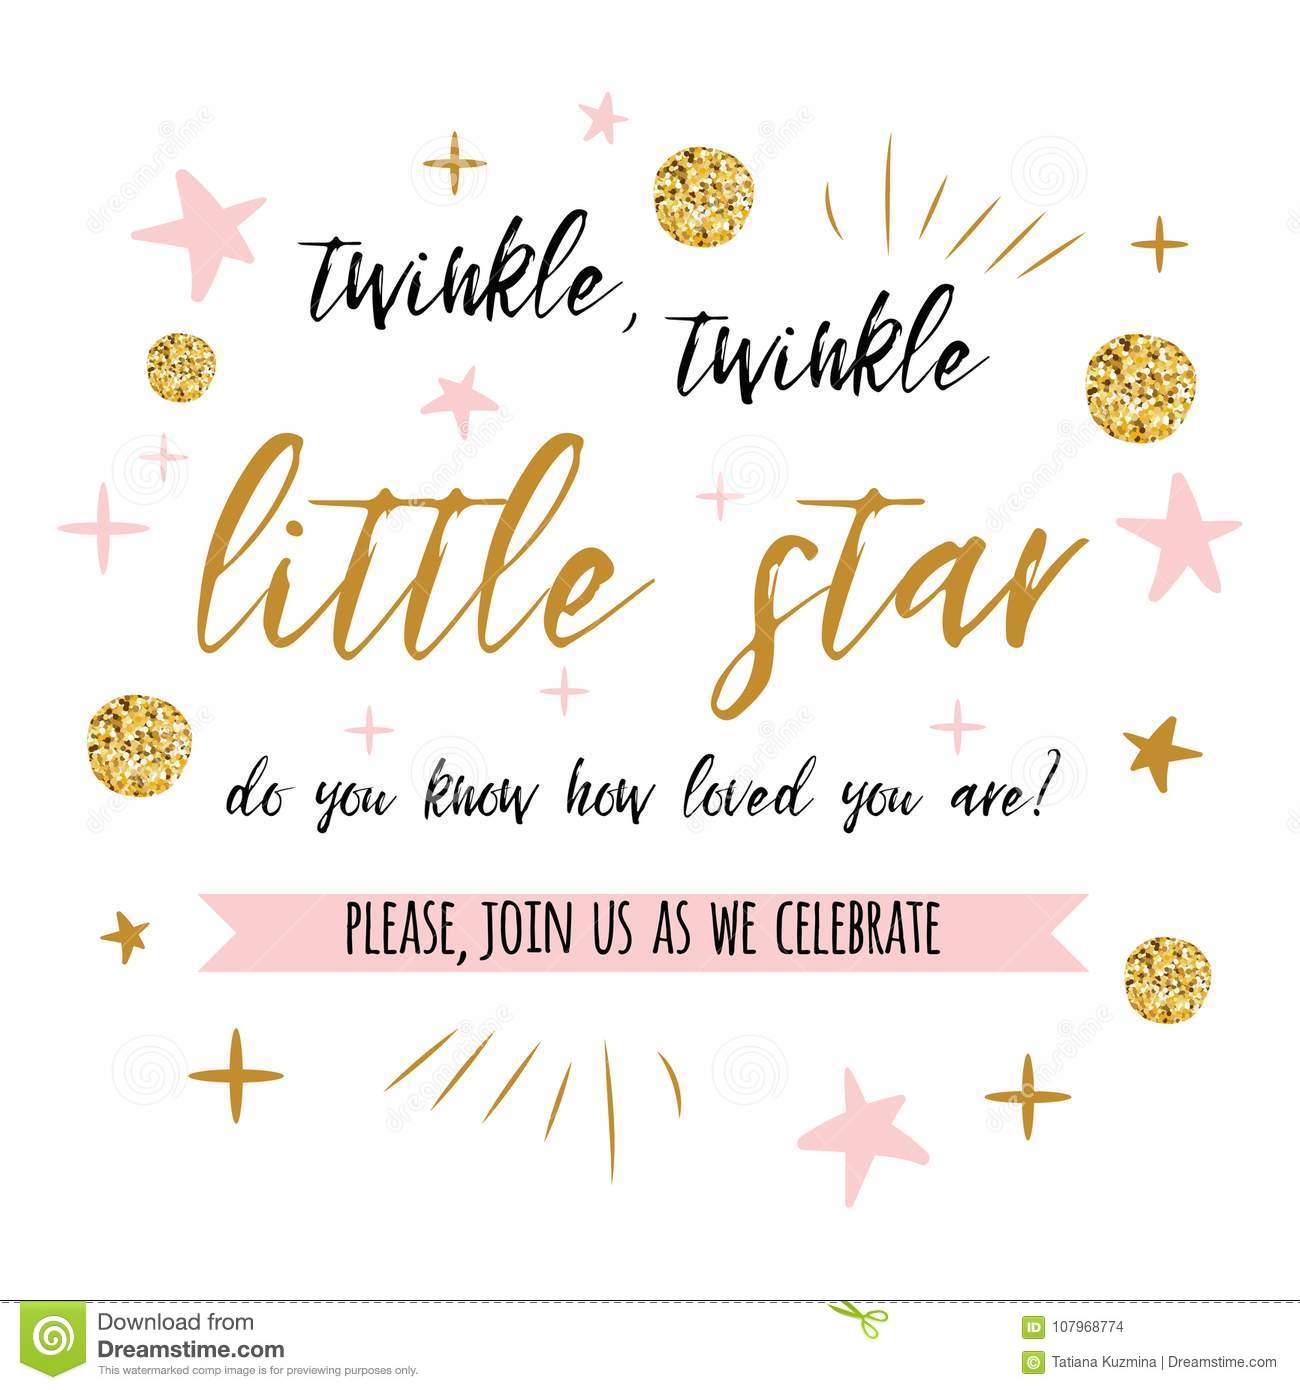 Twinkle Twinkle Little Star Text With Gold Polka Dot And Pink Star